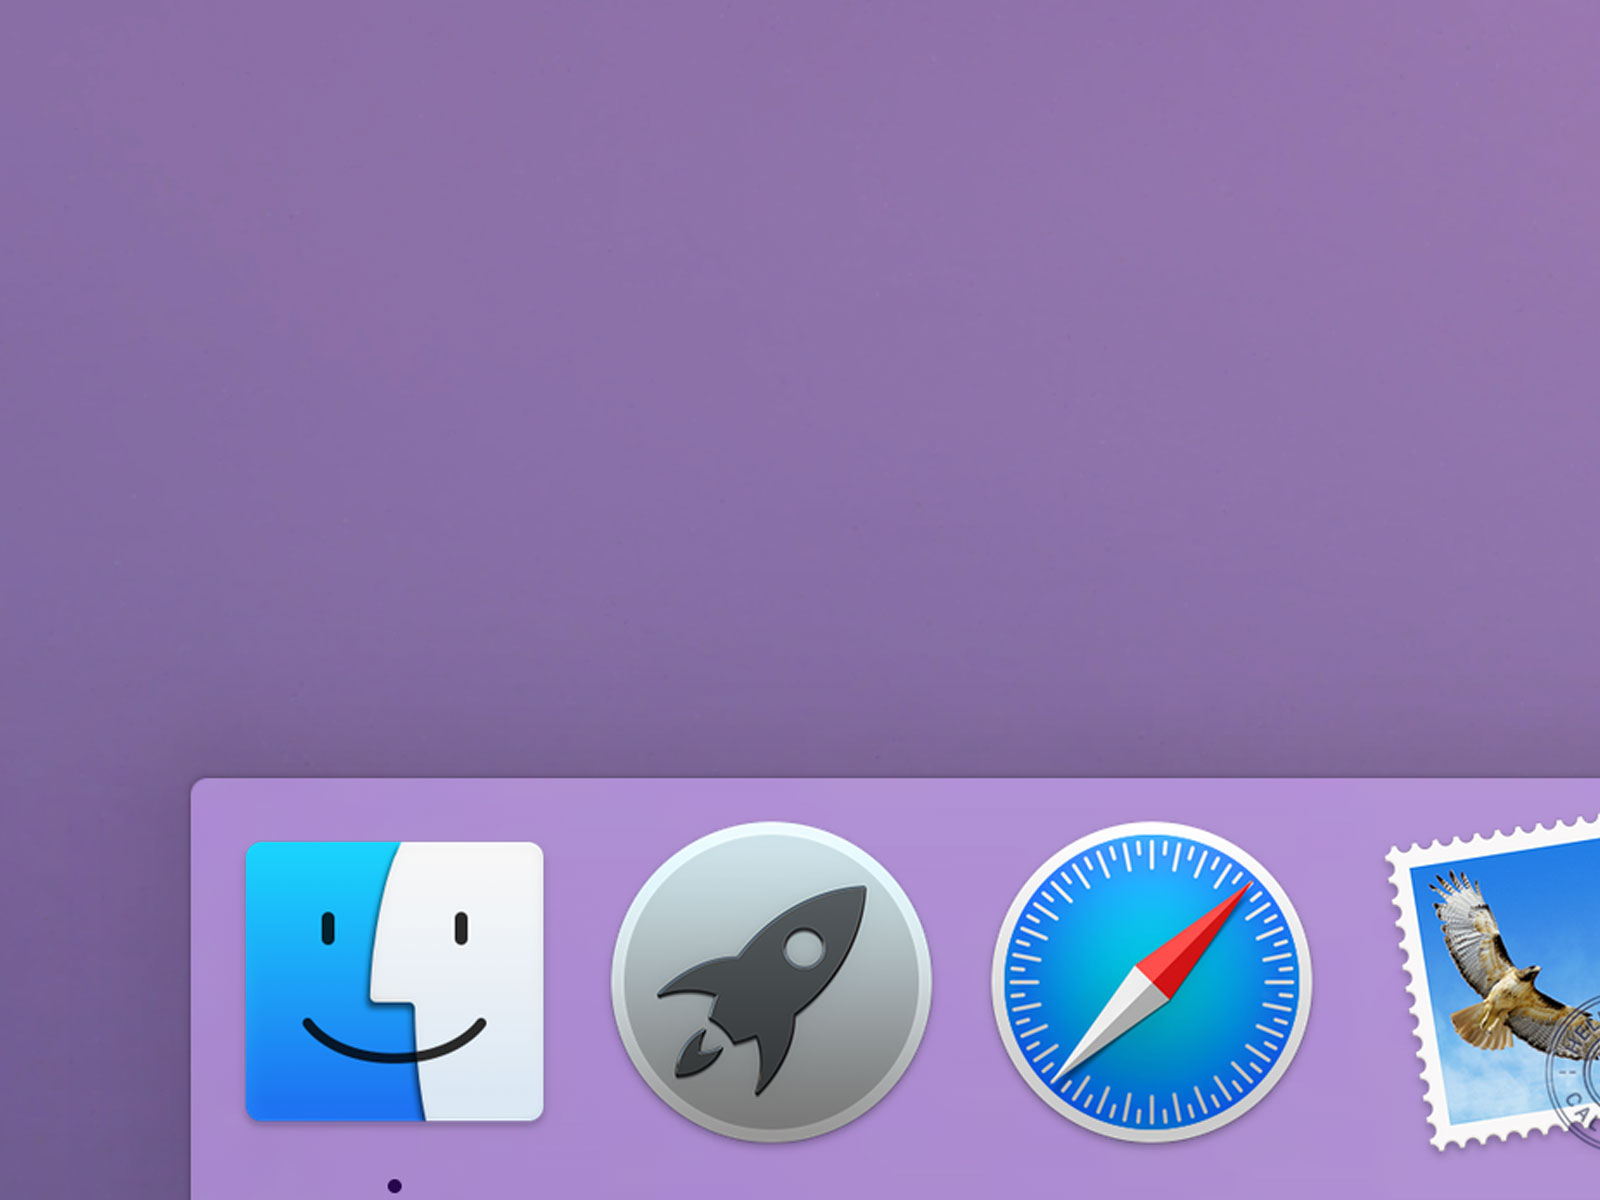 App window be minimized by clicking its dock icon mac pro